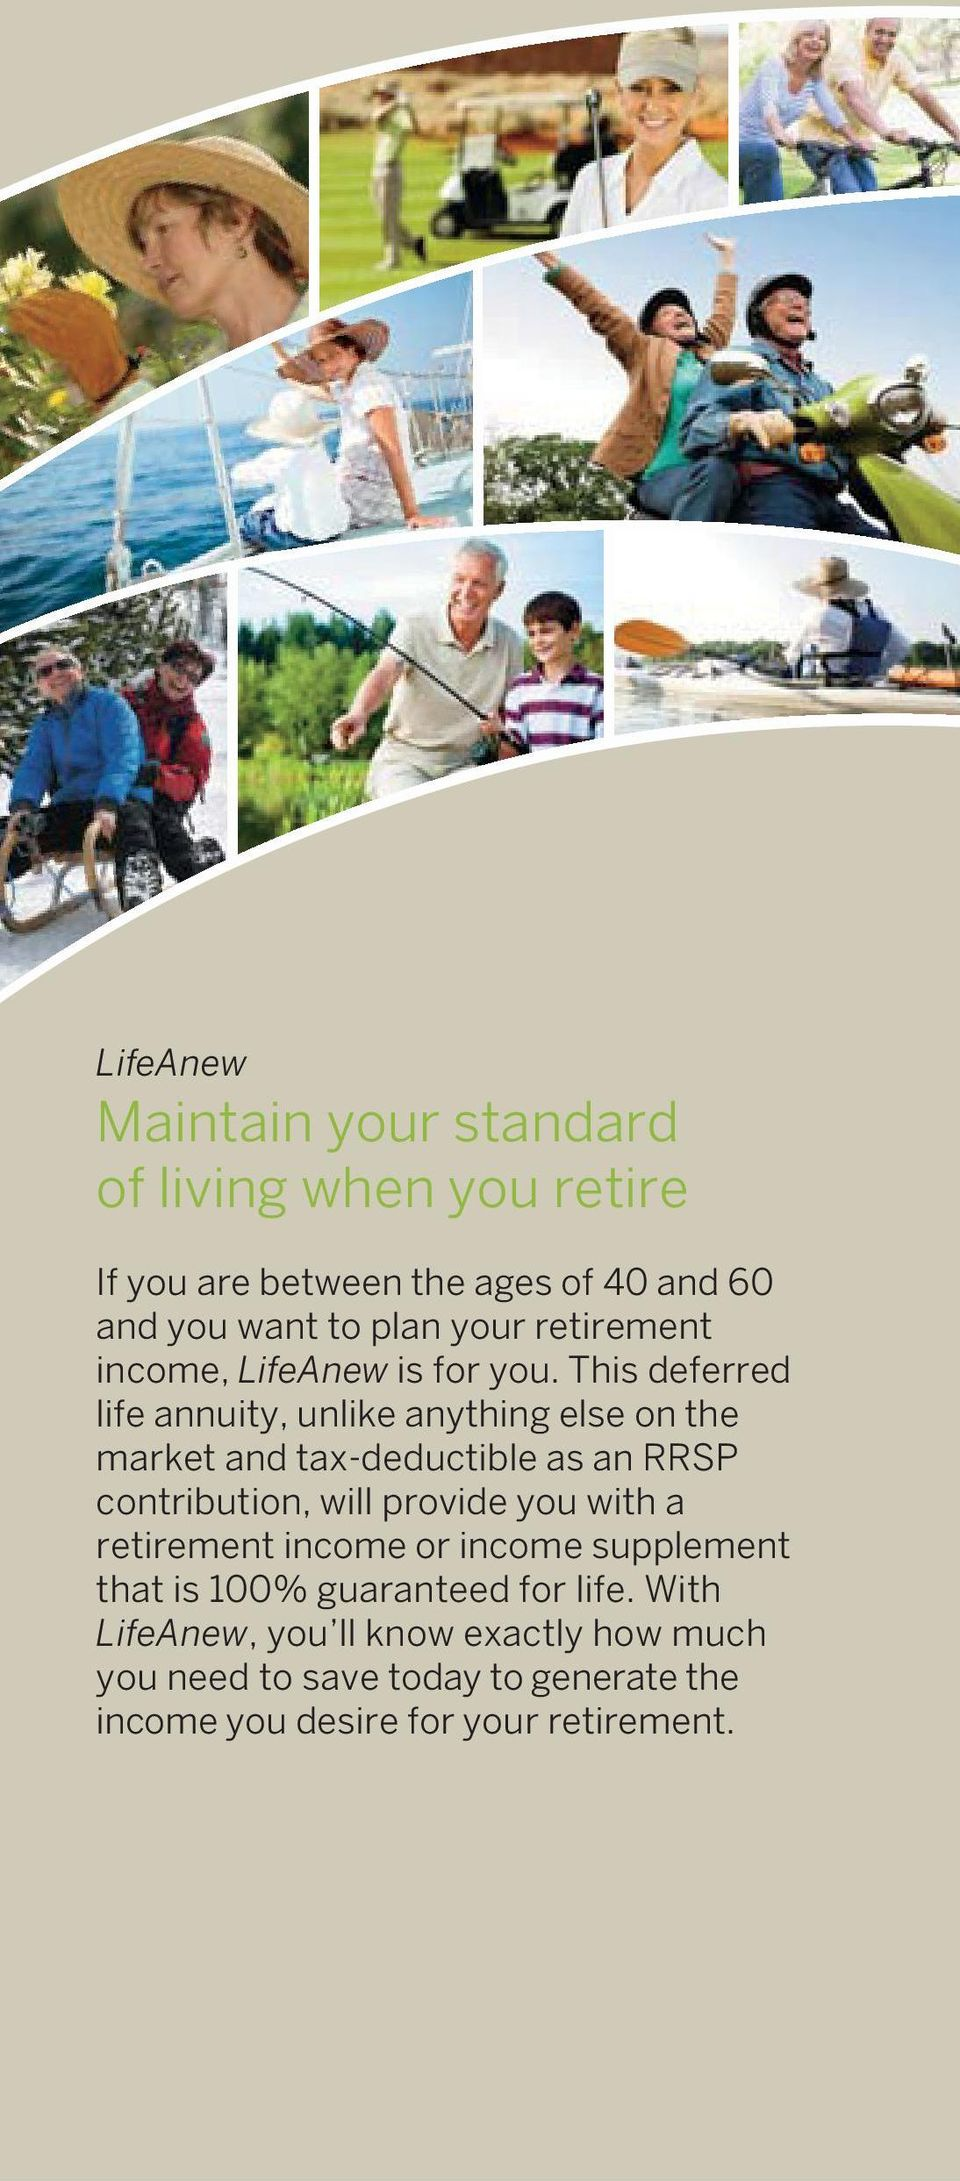 This deferred life annuity, unlike anything else on the market and tax-deductible as an RRSP contribution, will provide